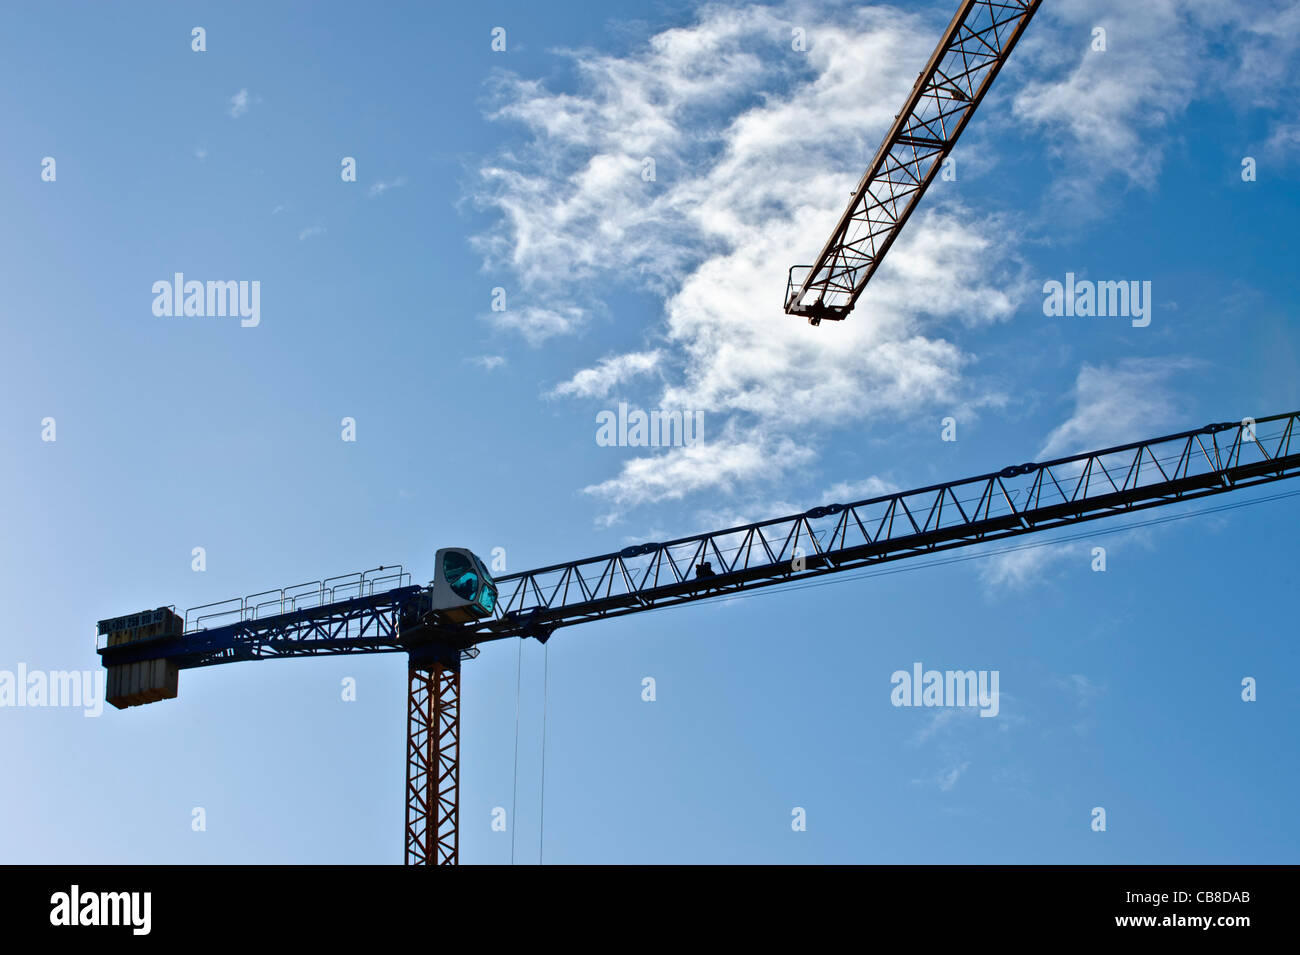 Silhouettes of construction cranes against a blue sky - Stock Image